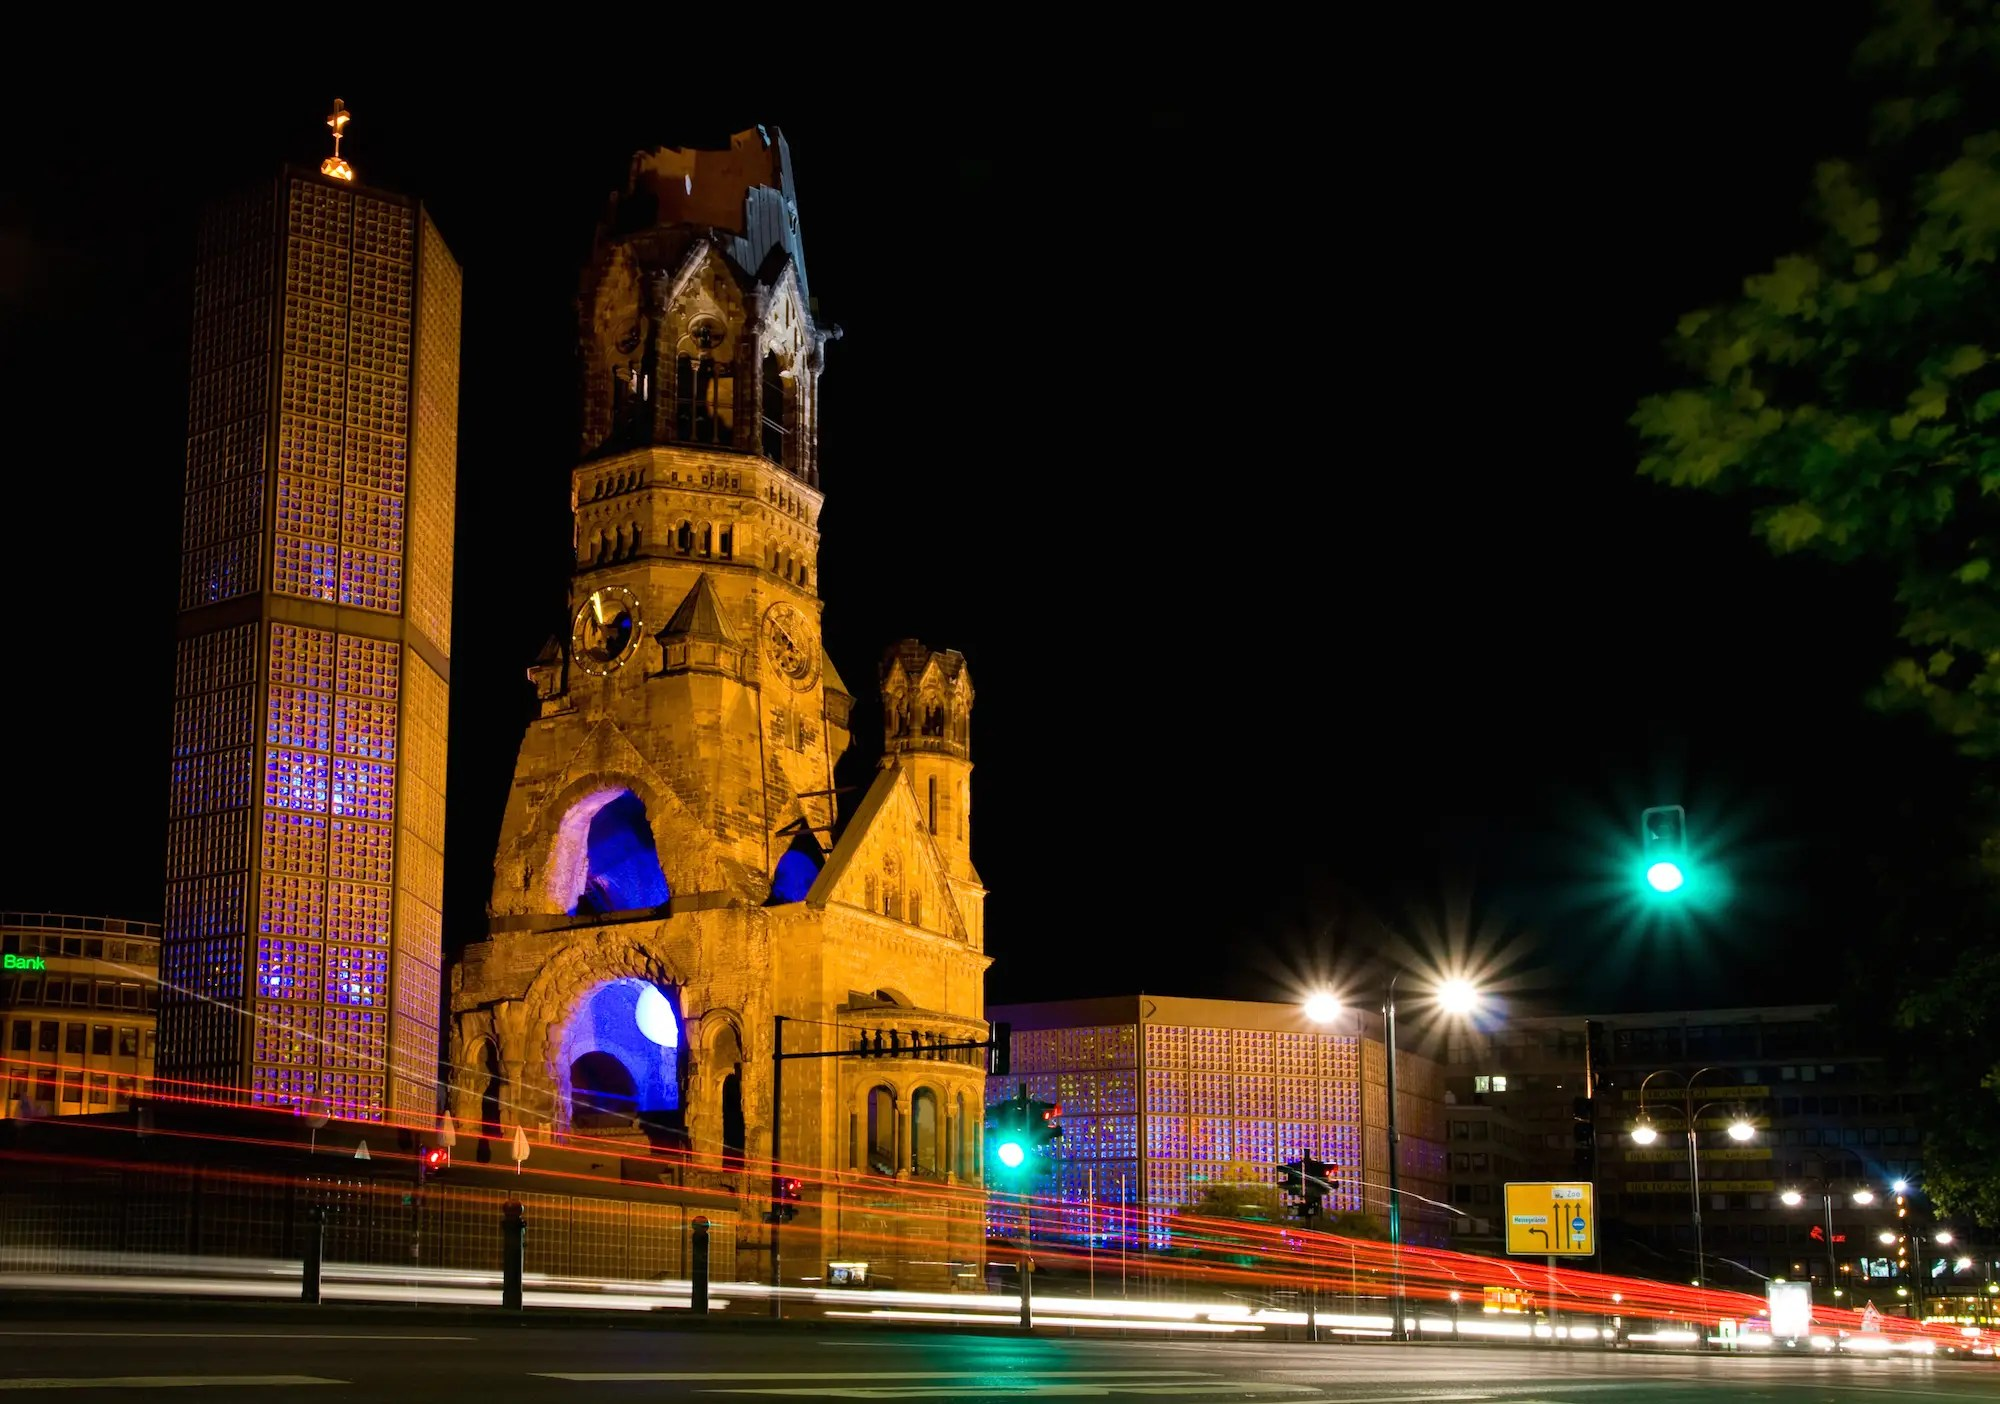 68. The Kaiser Wilhelm Memorial Church in Berlin, Germany, is a perfect mashup of World War II ruins and early 1960s architecture.